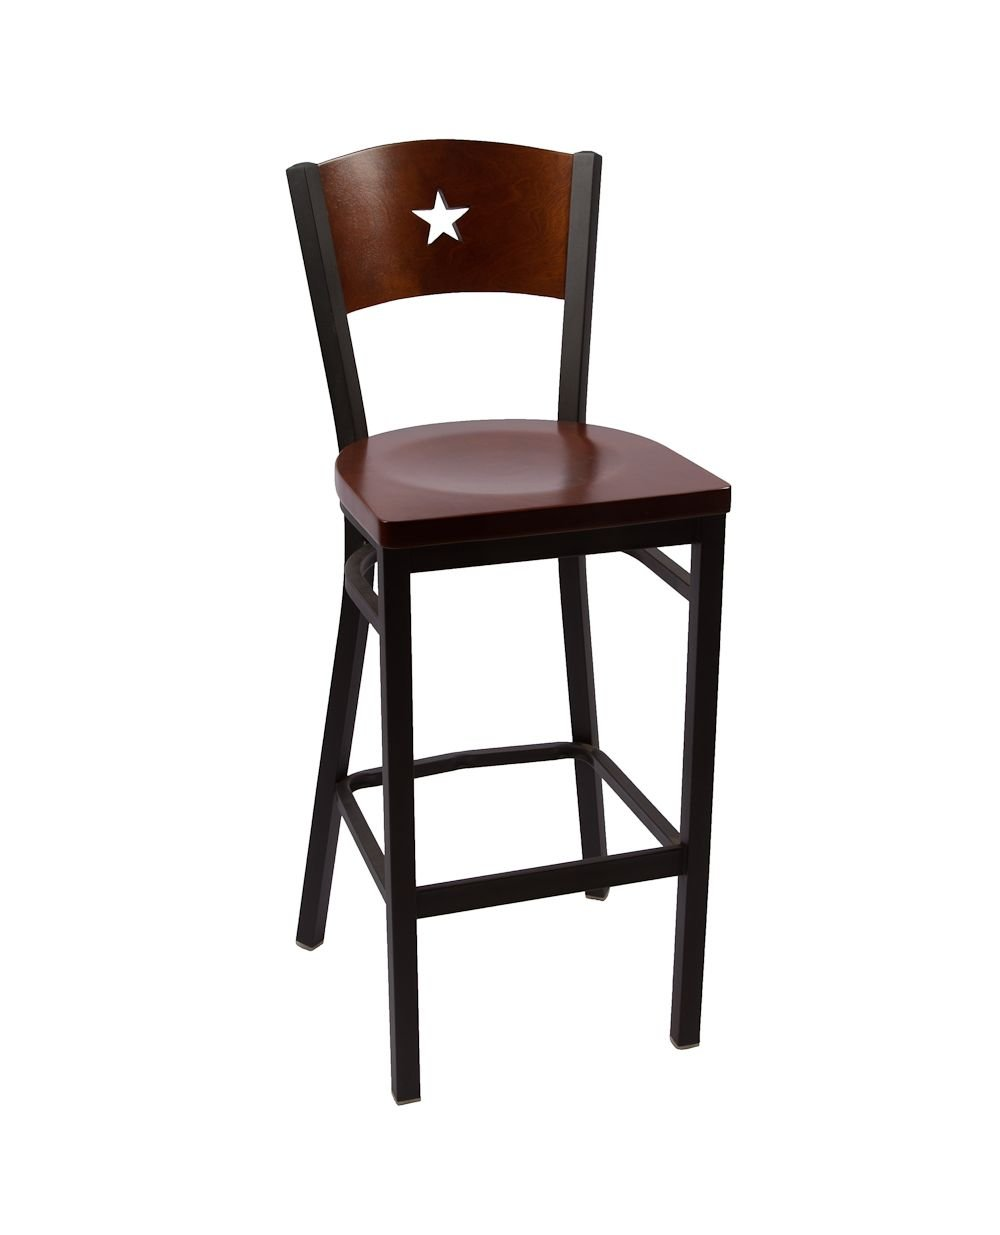 Liberty Series Indoor Metal Restaurant Barstool : LibertyBarstoolWalnut from www.seatingconnection.com size 1000 x 1235 jpeg 51kB